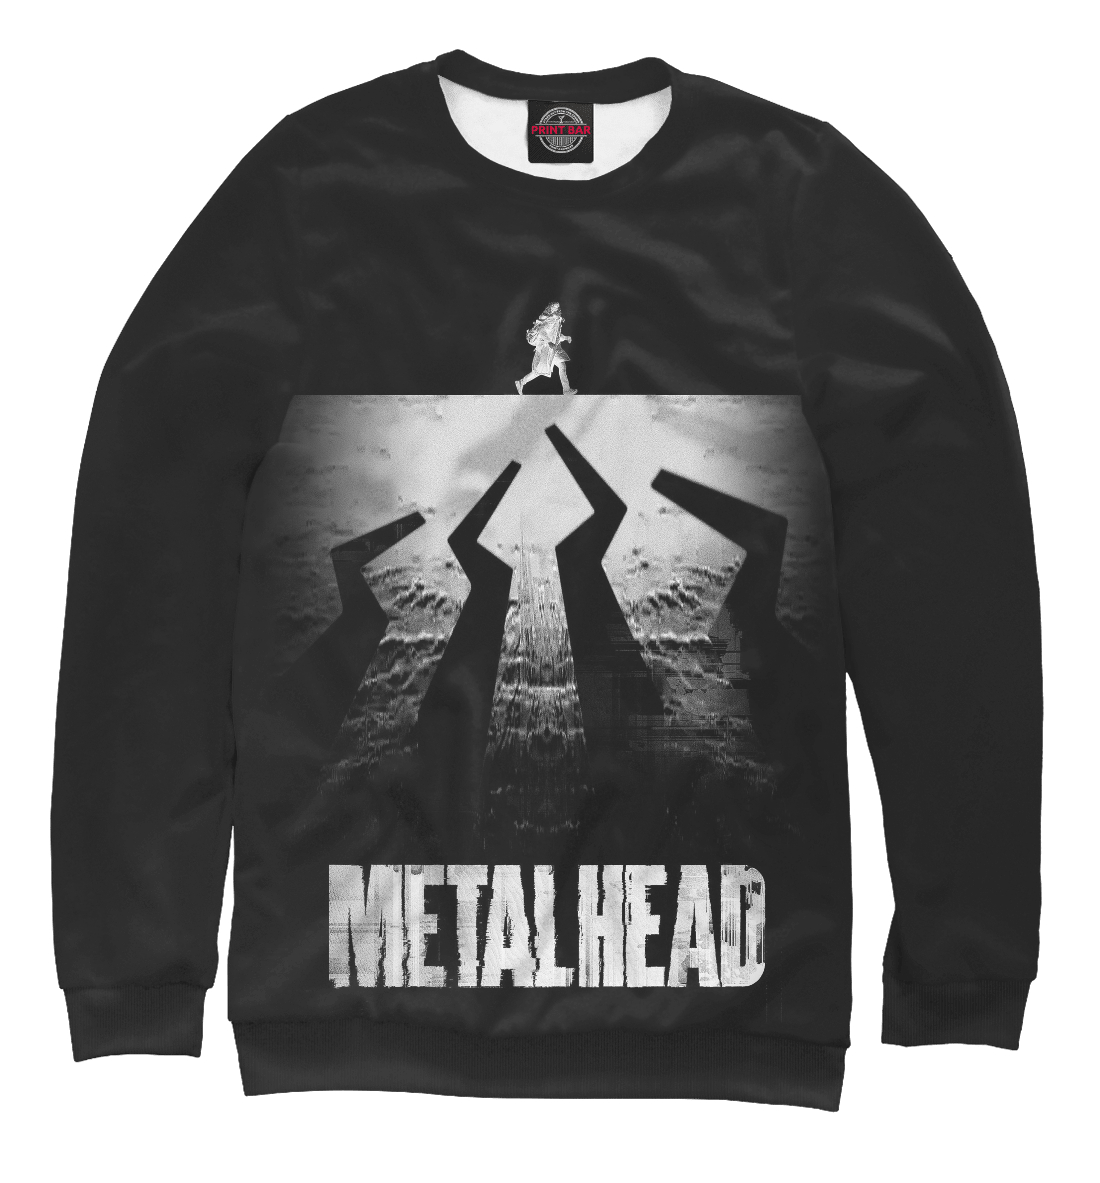 Купить Black Mirror: Metalhead, Printbar, Свитшоты, BLM-935602-swi-2